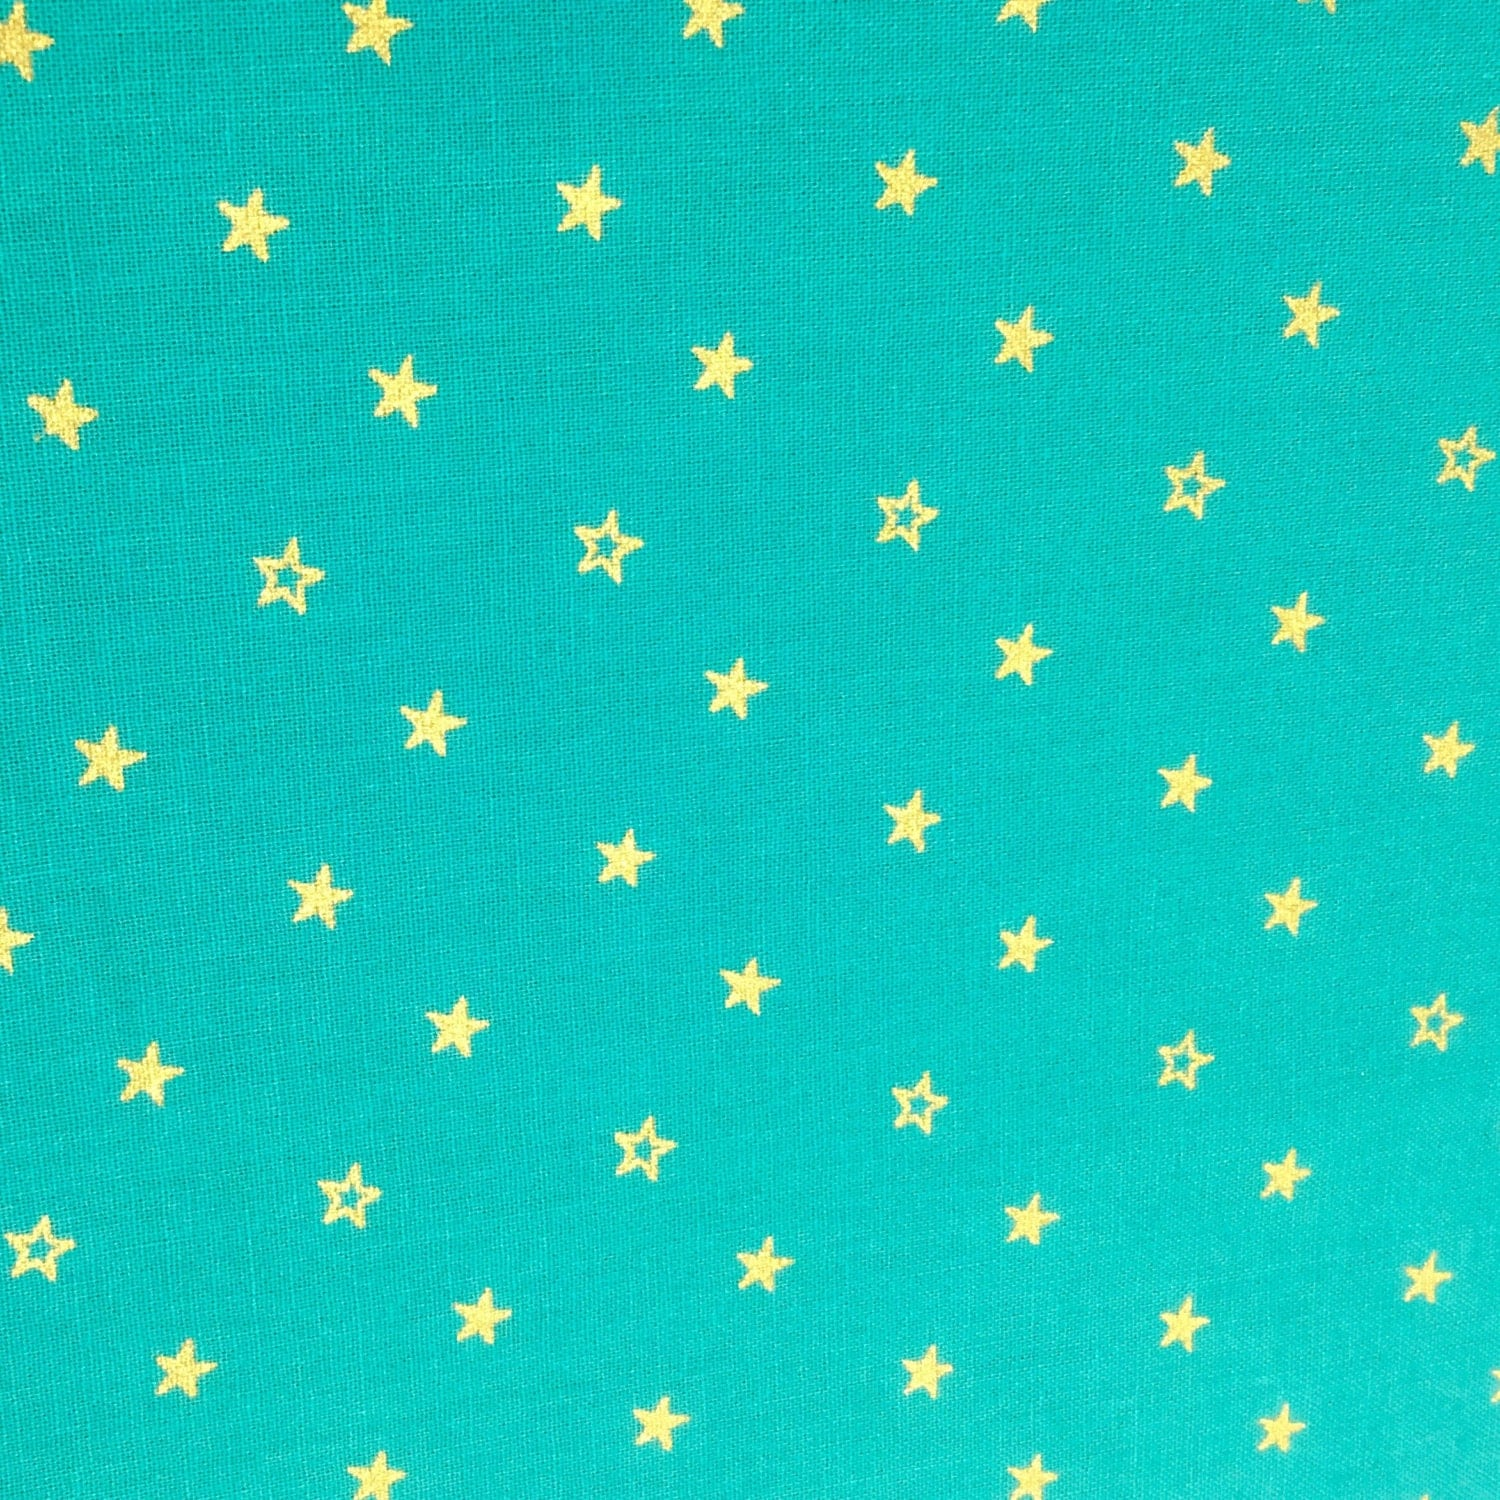 Teal and gold star fabric mg14 aqua blue metallic gold for Star fabric australia